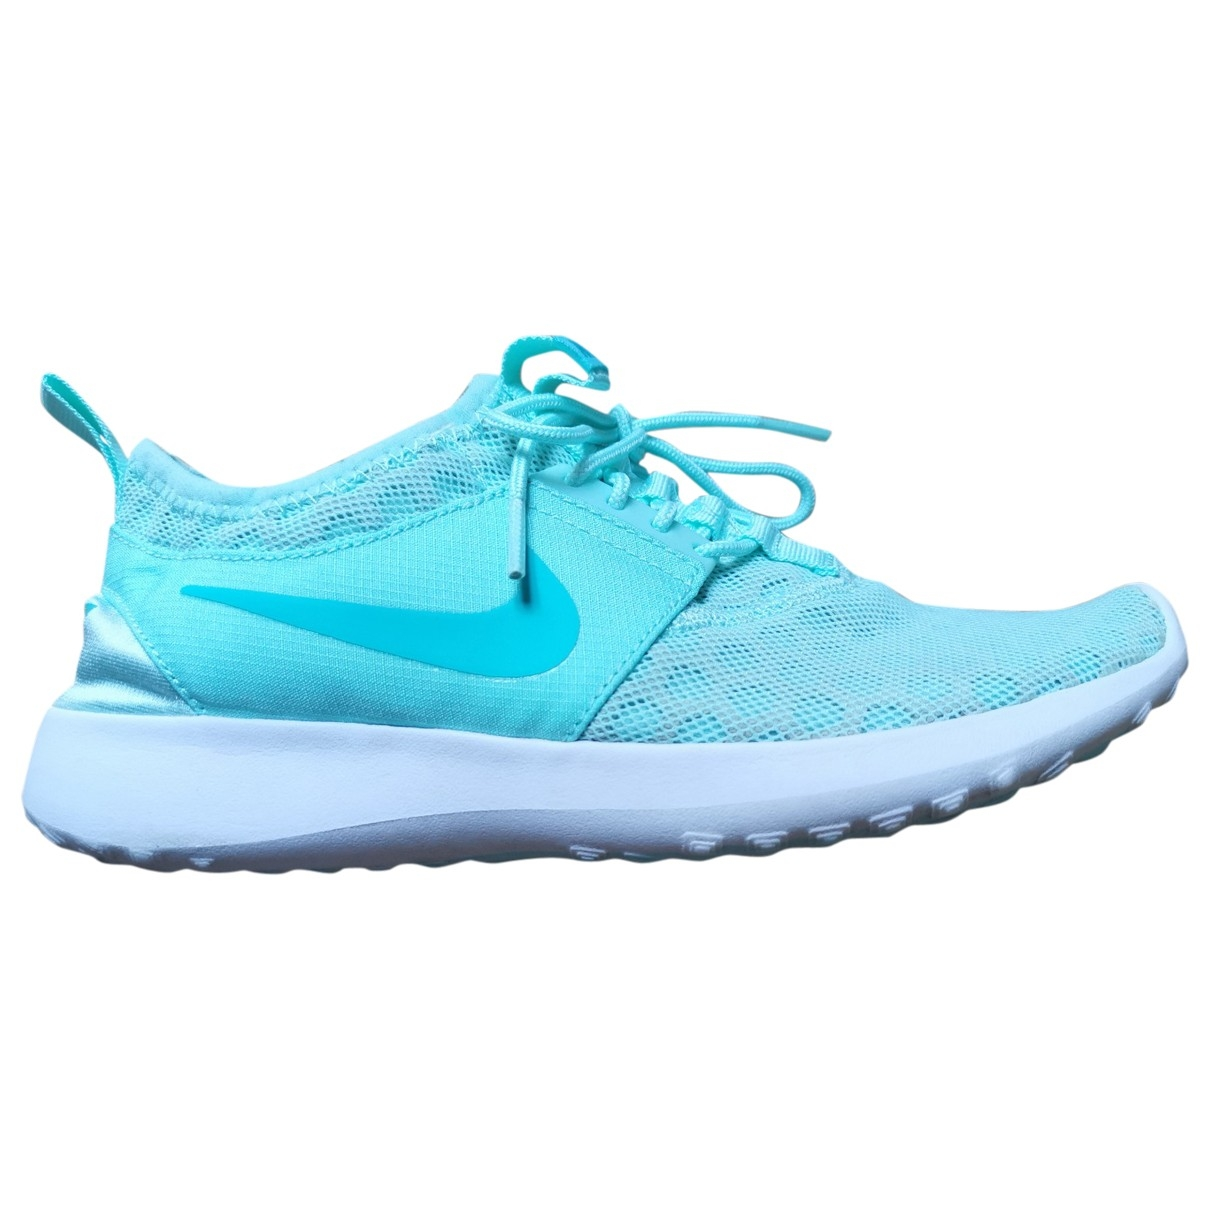 Nike \N Turquoise Trainers for Women 38 EU